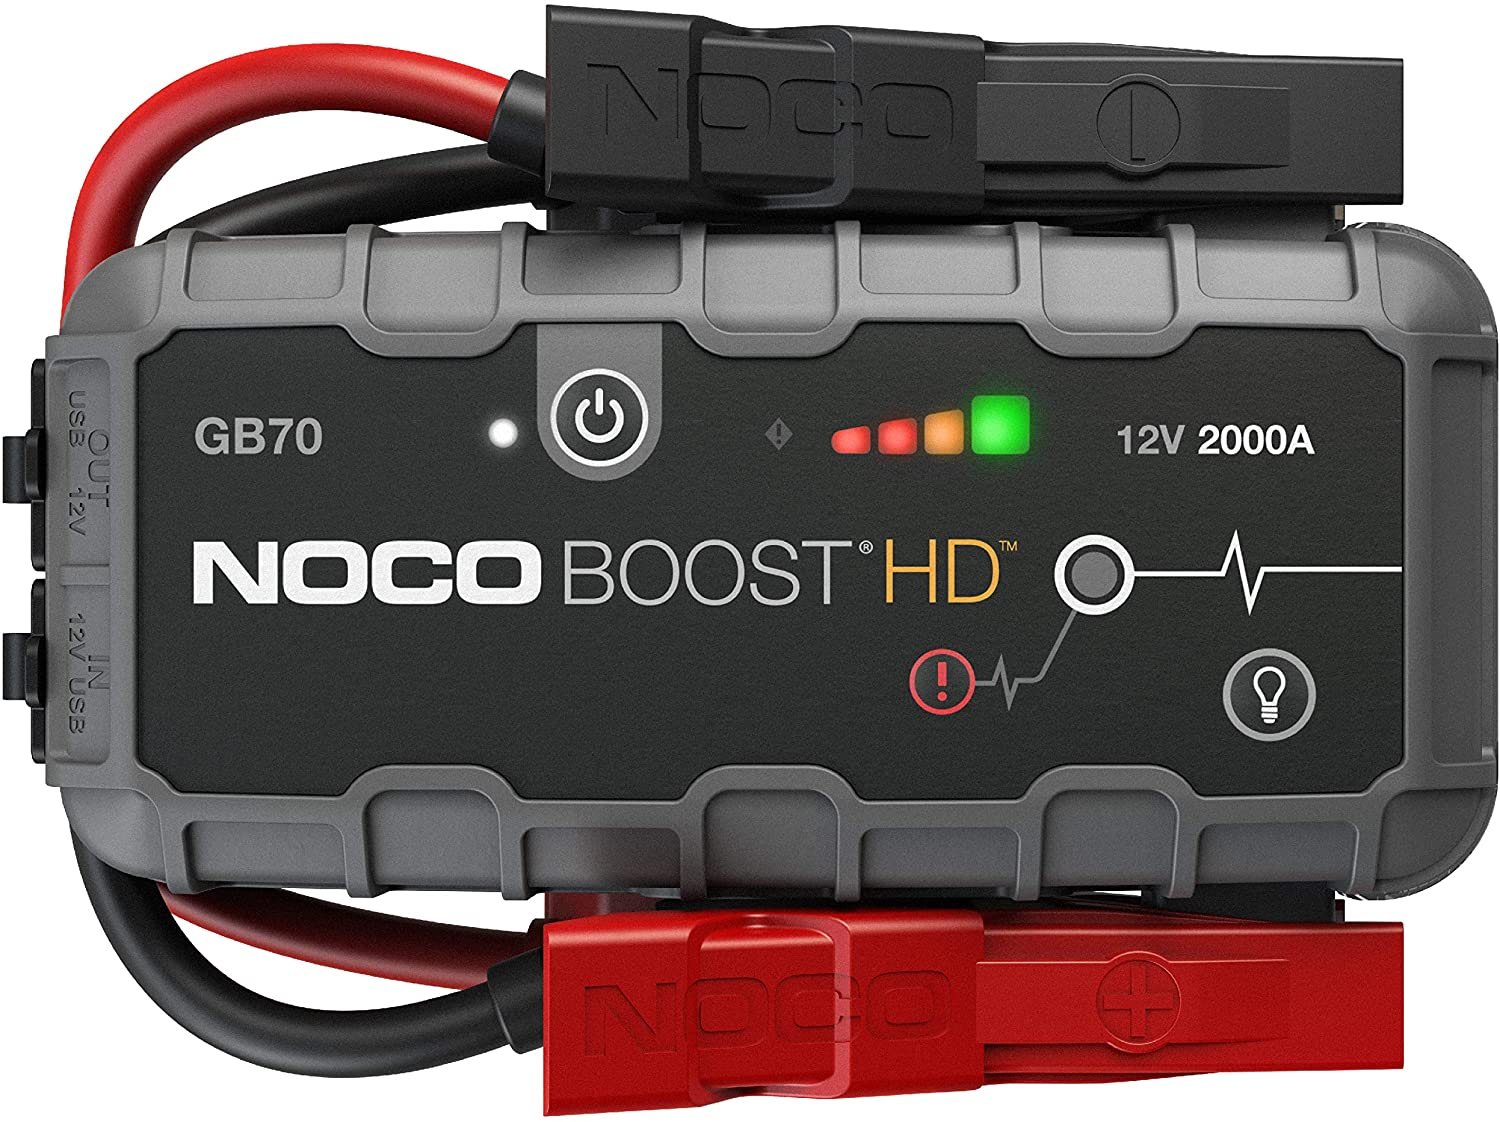 NOCO Boost HD GB70 2000 Amp 12-Volt UltraSafe 12-Volt UltraSafe Lithium Jump Starter For Up To 8-Liter Gasoline And 6-Liter Diesel Engines